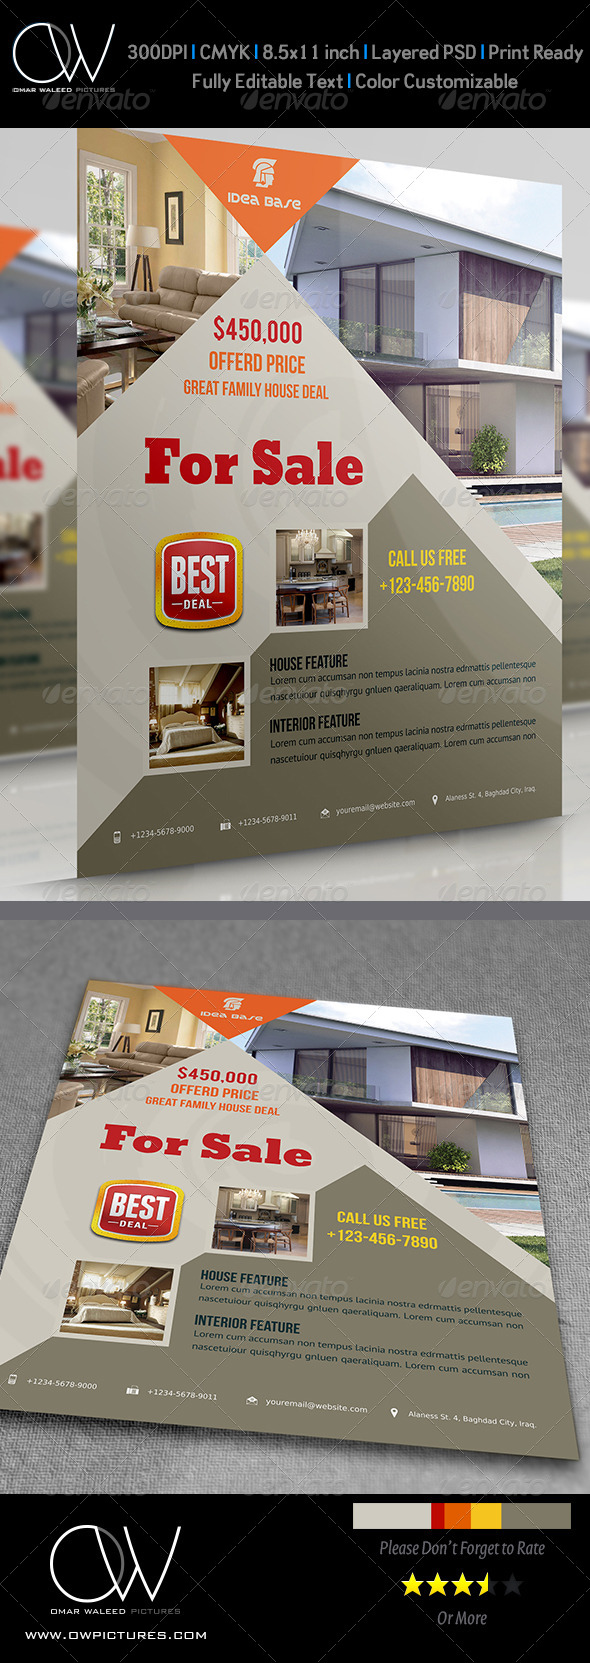 Real Estate Flyer Vol.4 - Commerce Flyers